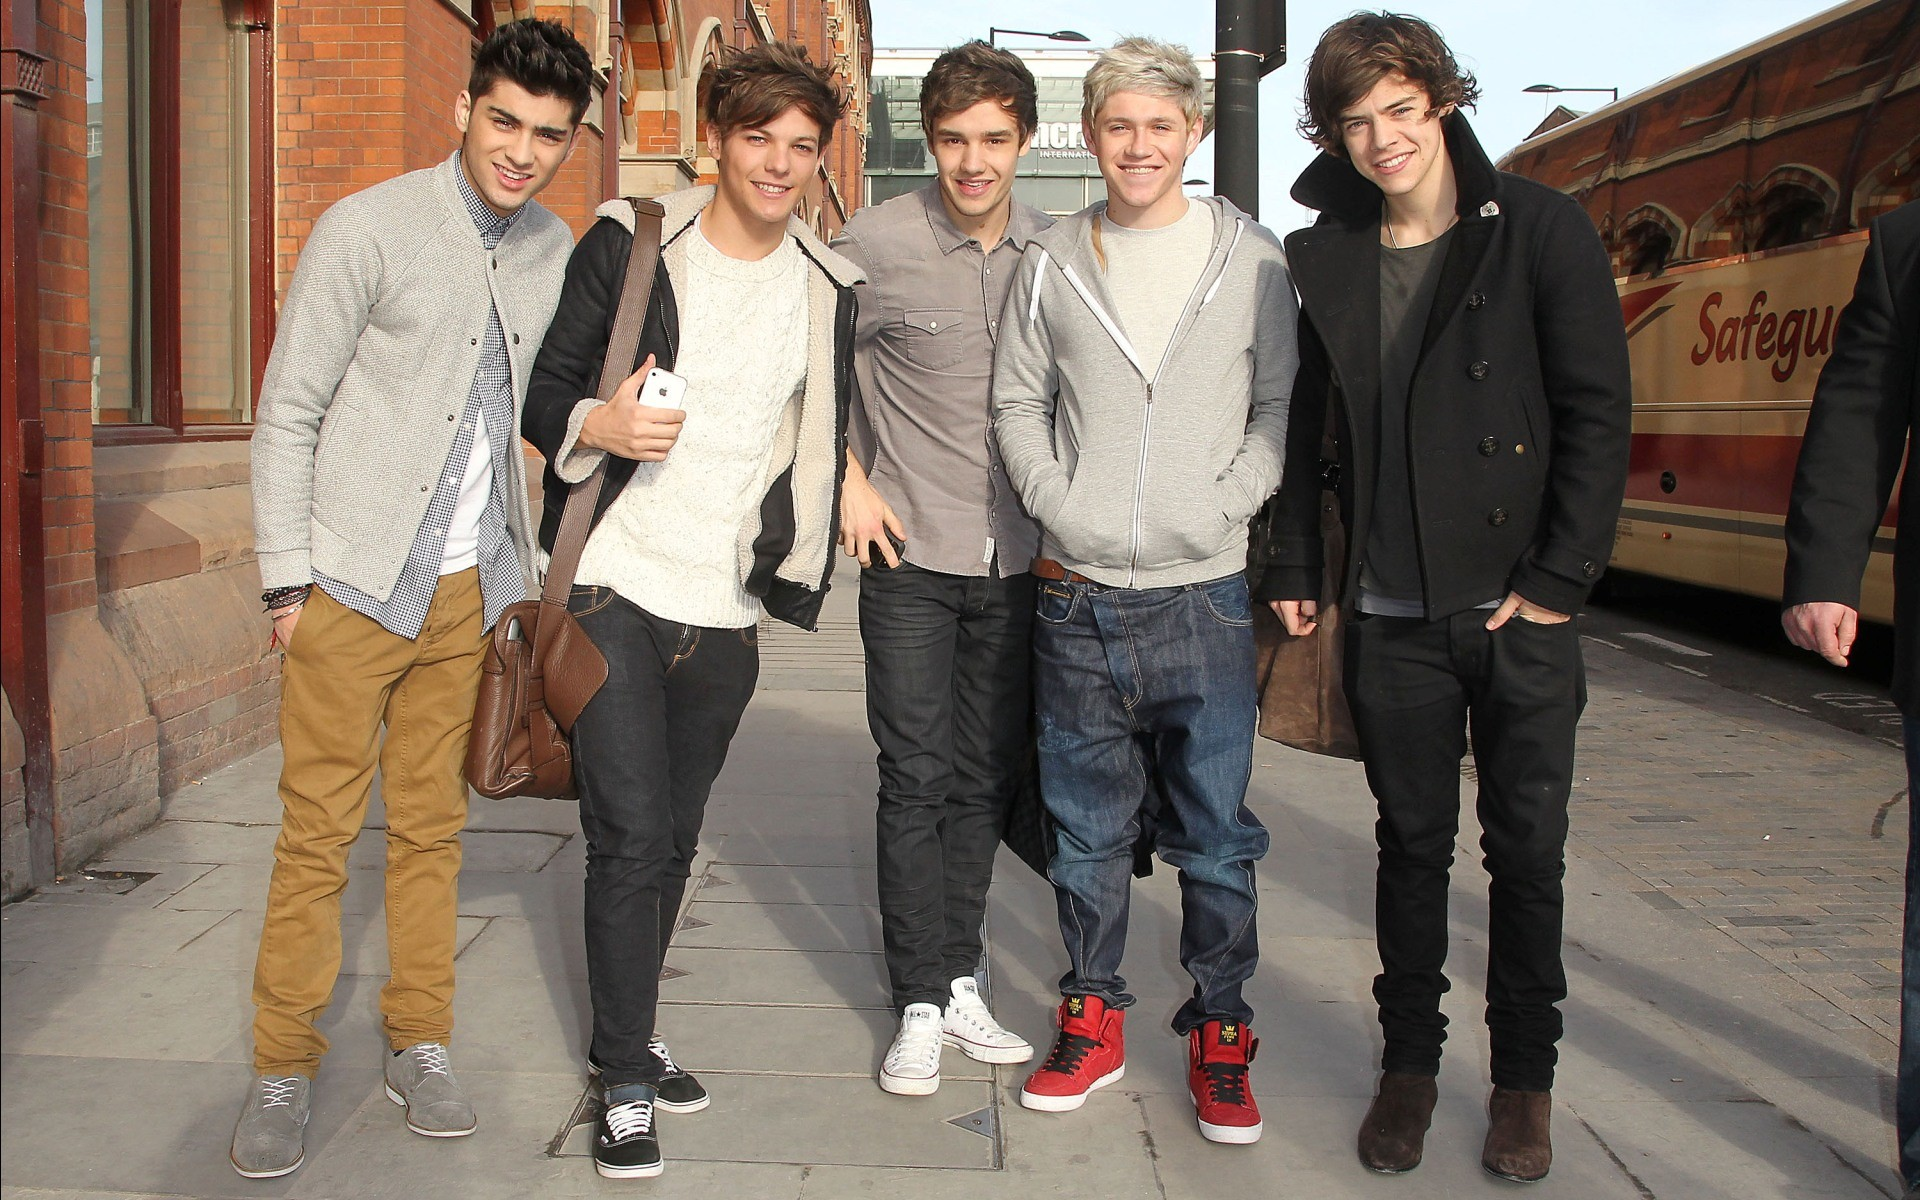 One Direction Background Wallpapers For Desktop | Mulberry Nails